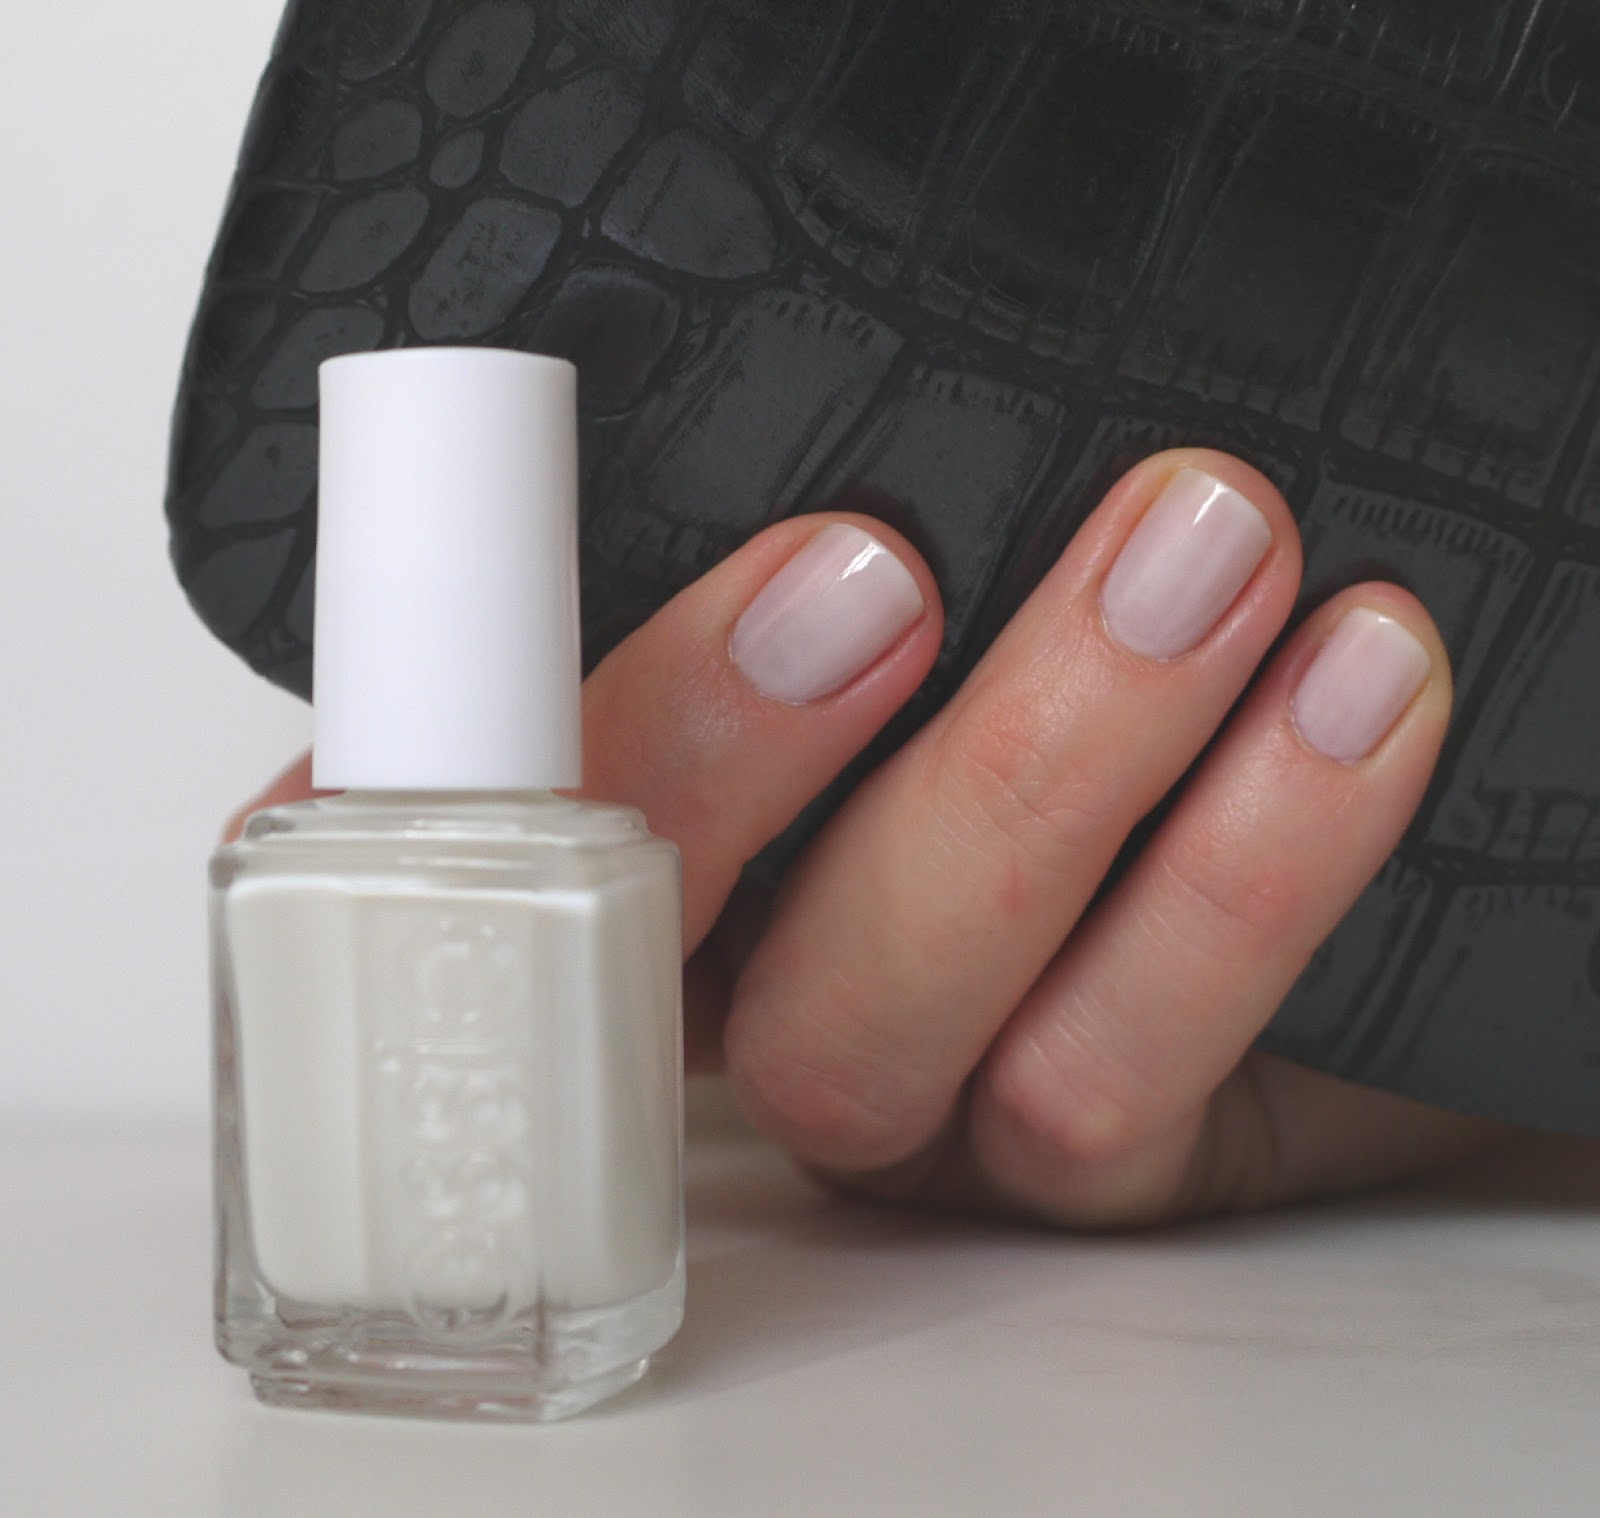 Category - Beautiful: White Nail Polish... Essie in J400 #337 Waltz